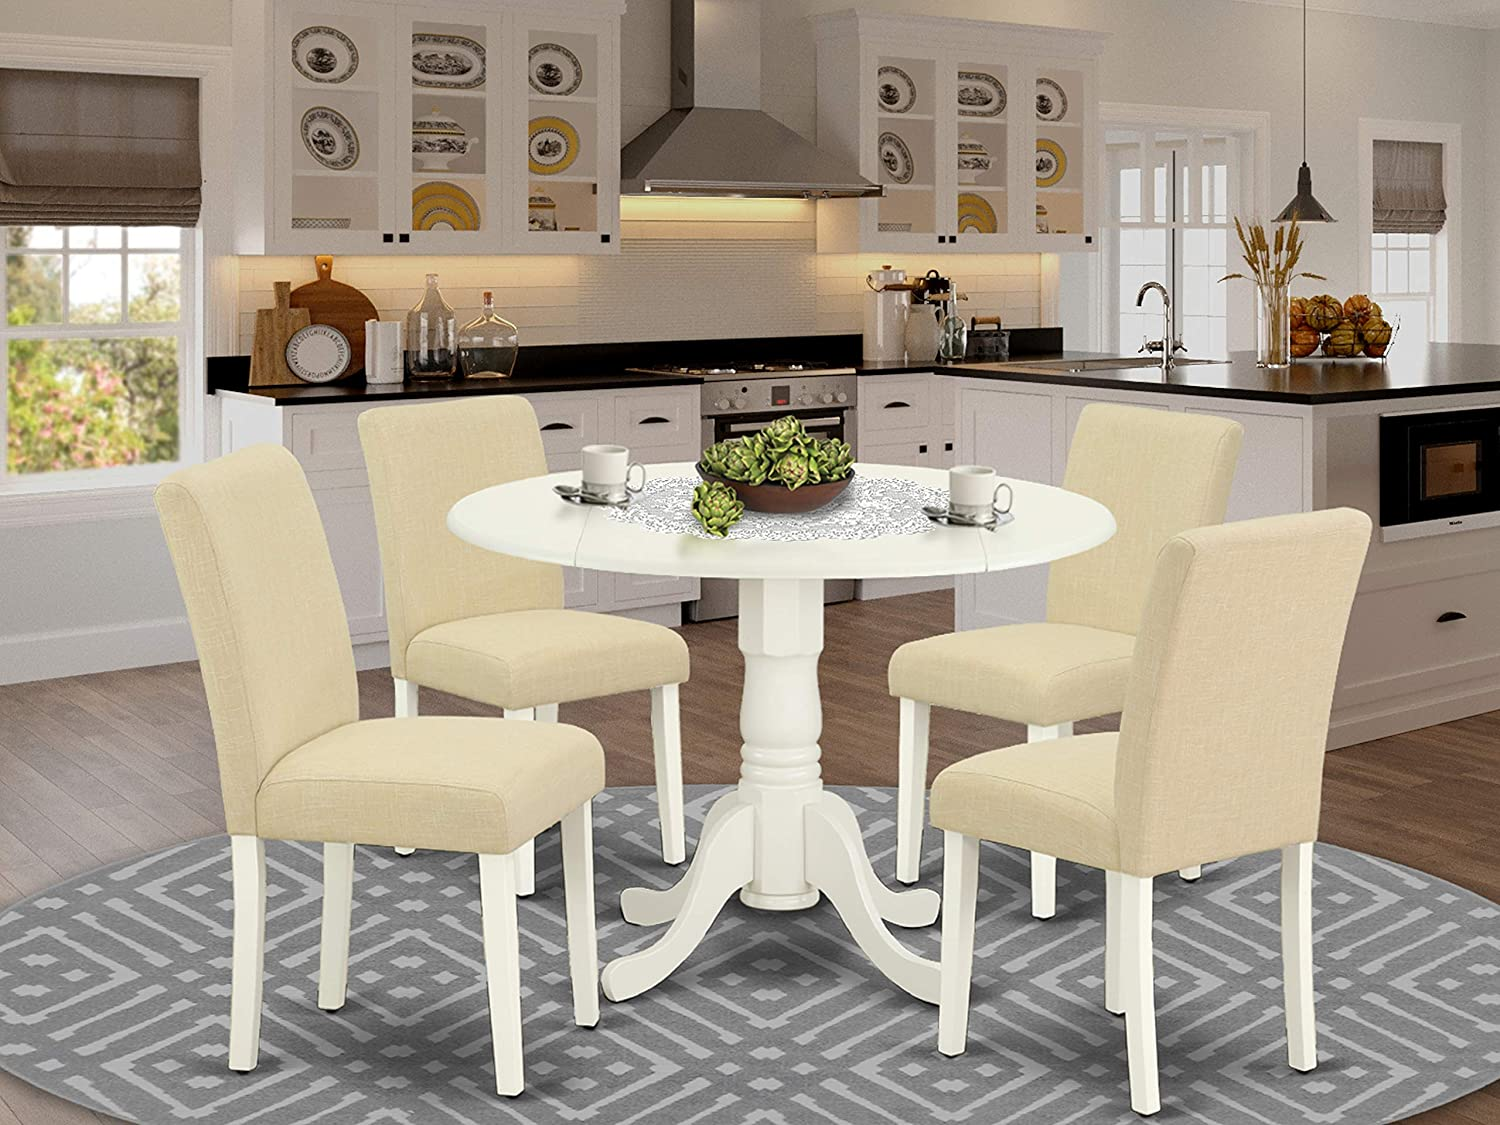 East West Furniture Dinette Set 5 Pieces-Light Beige Fabric Parsons Room Chairs-Linen White Finish Solid wood two 9-inch drop leaves Modern Dining Table and Structure, 5